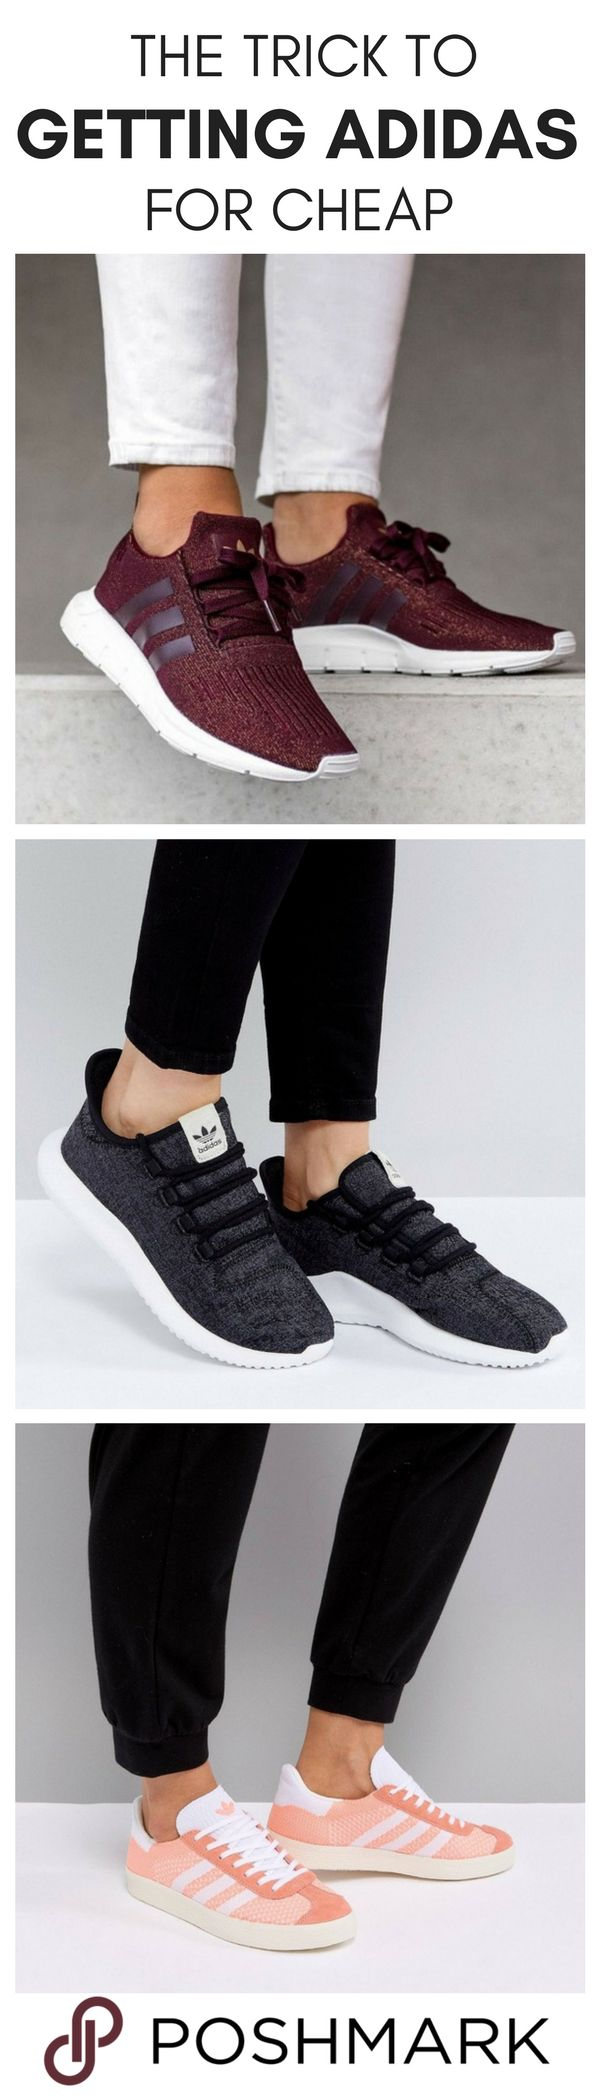 Shop, Sell, Style. Be on trend while still staying on budget! Download Poshmark and FIND DEALS up to 80% off Adidas & more!